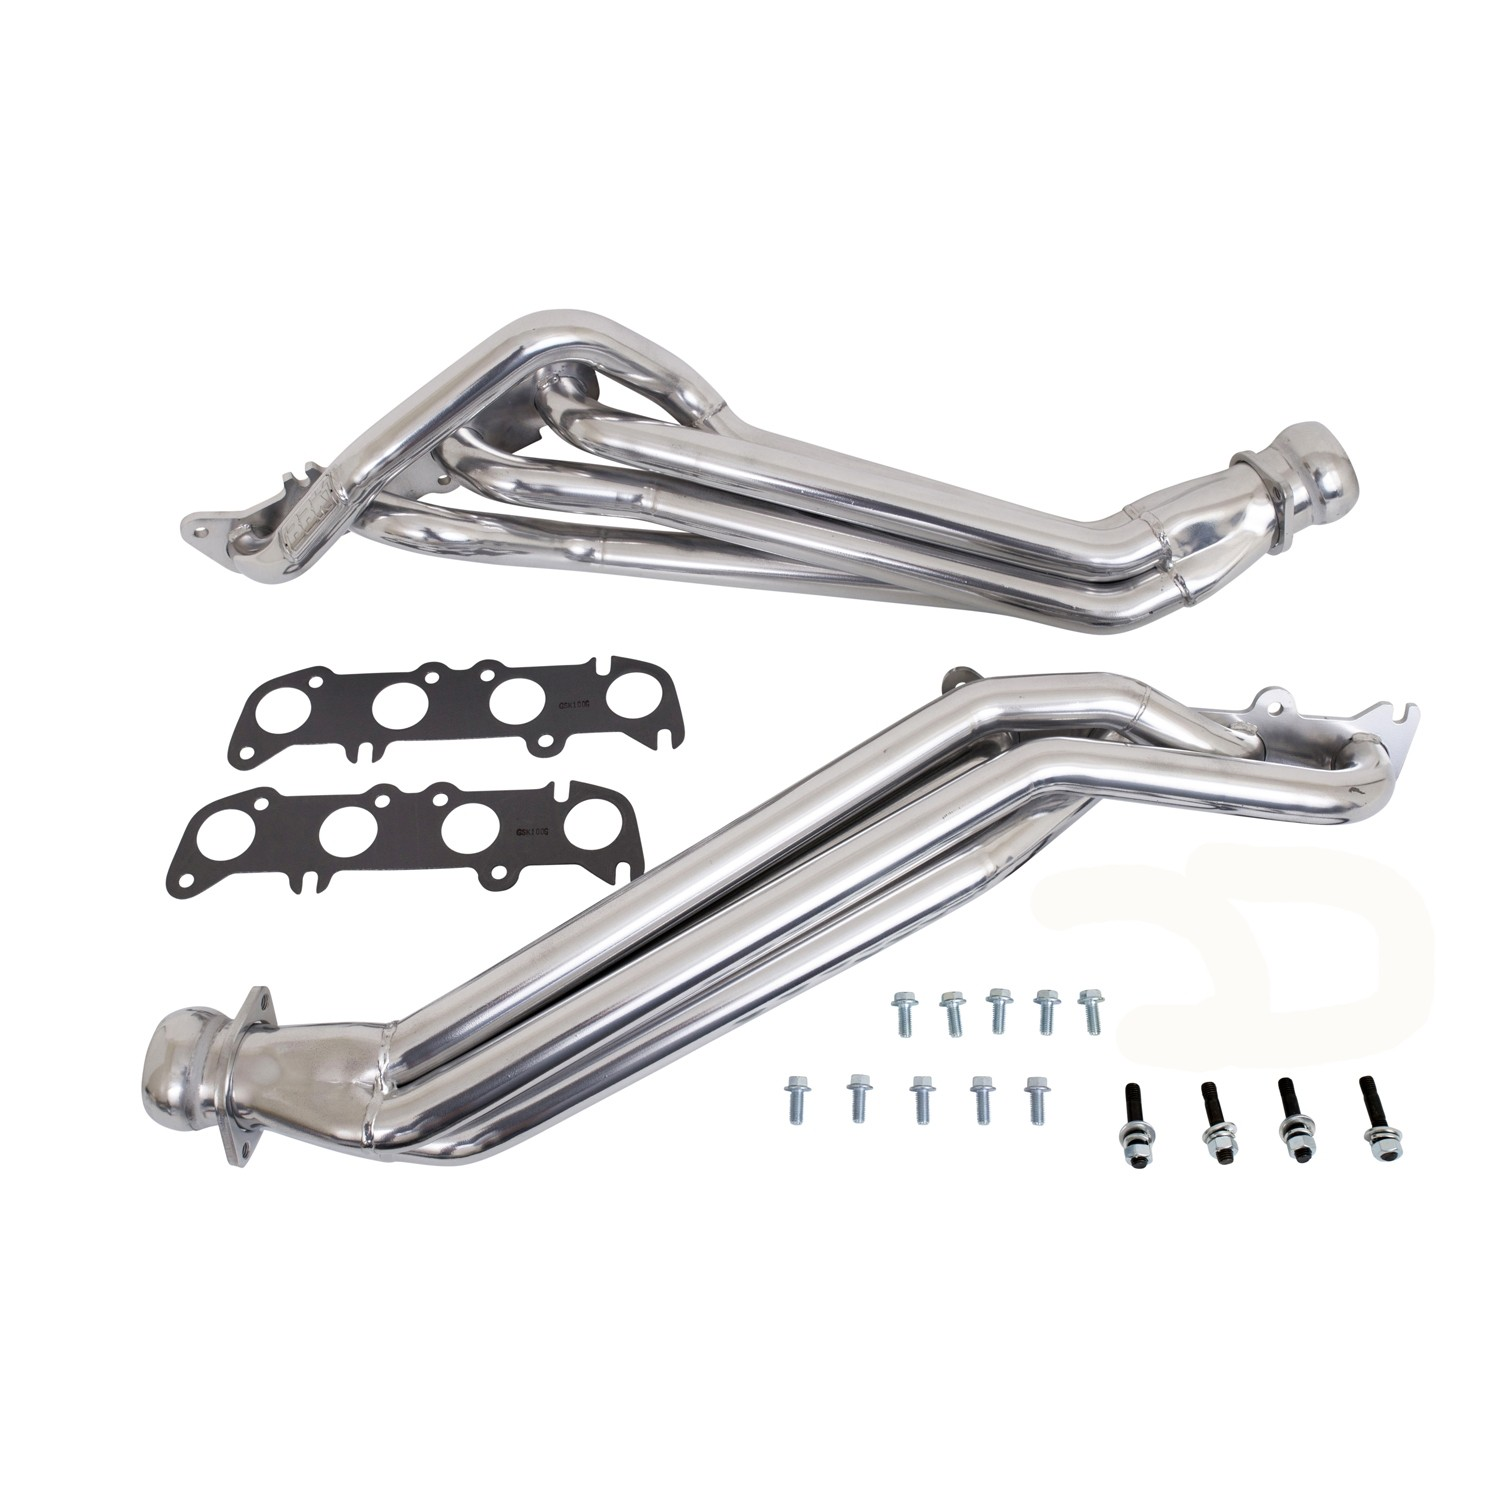 "BBK 1-3/4"" Full Length Headers - Ceramic Coated (11-17 Mustang GT)"